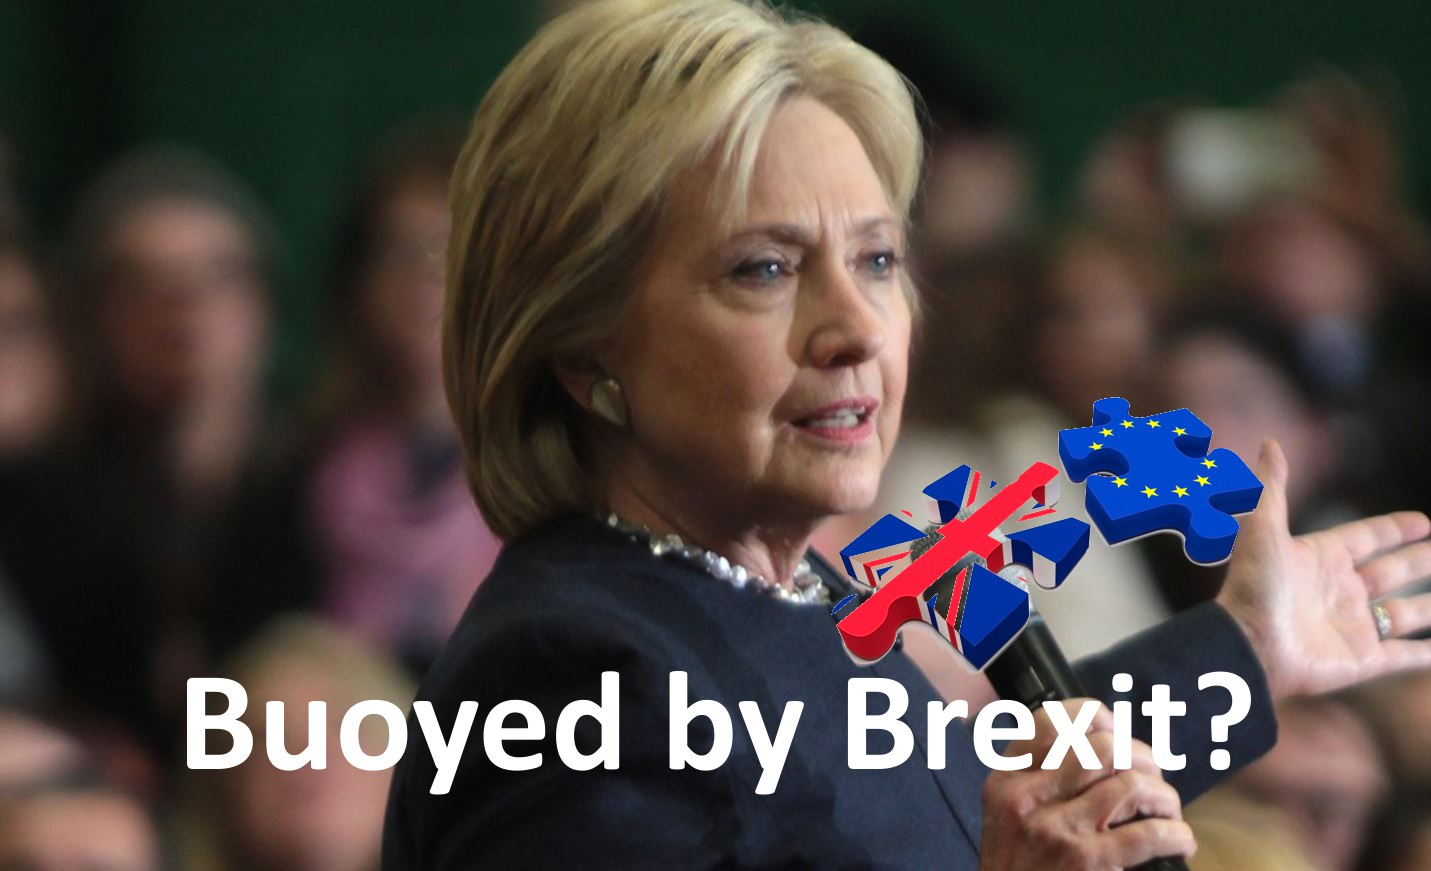 Brexit may ultimately help Hillary Clinton